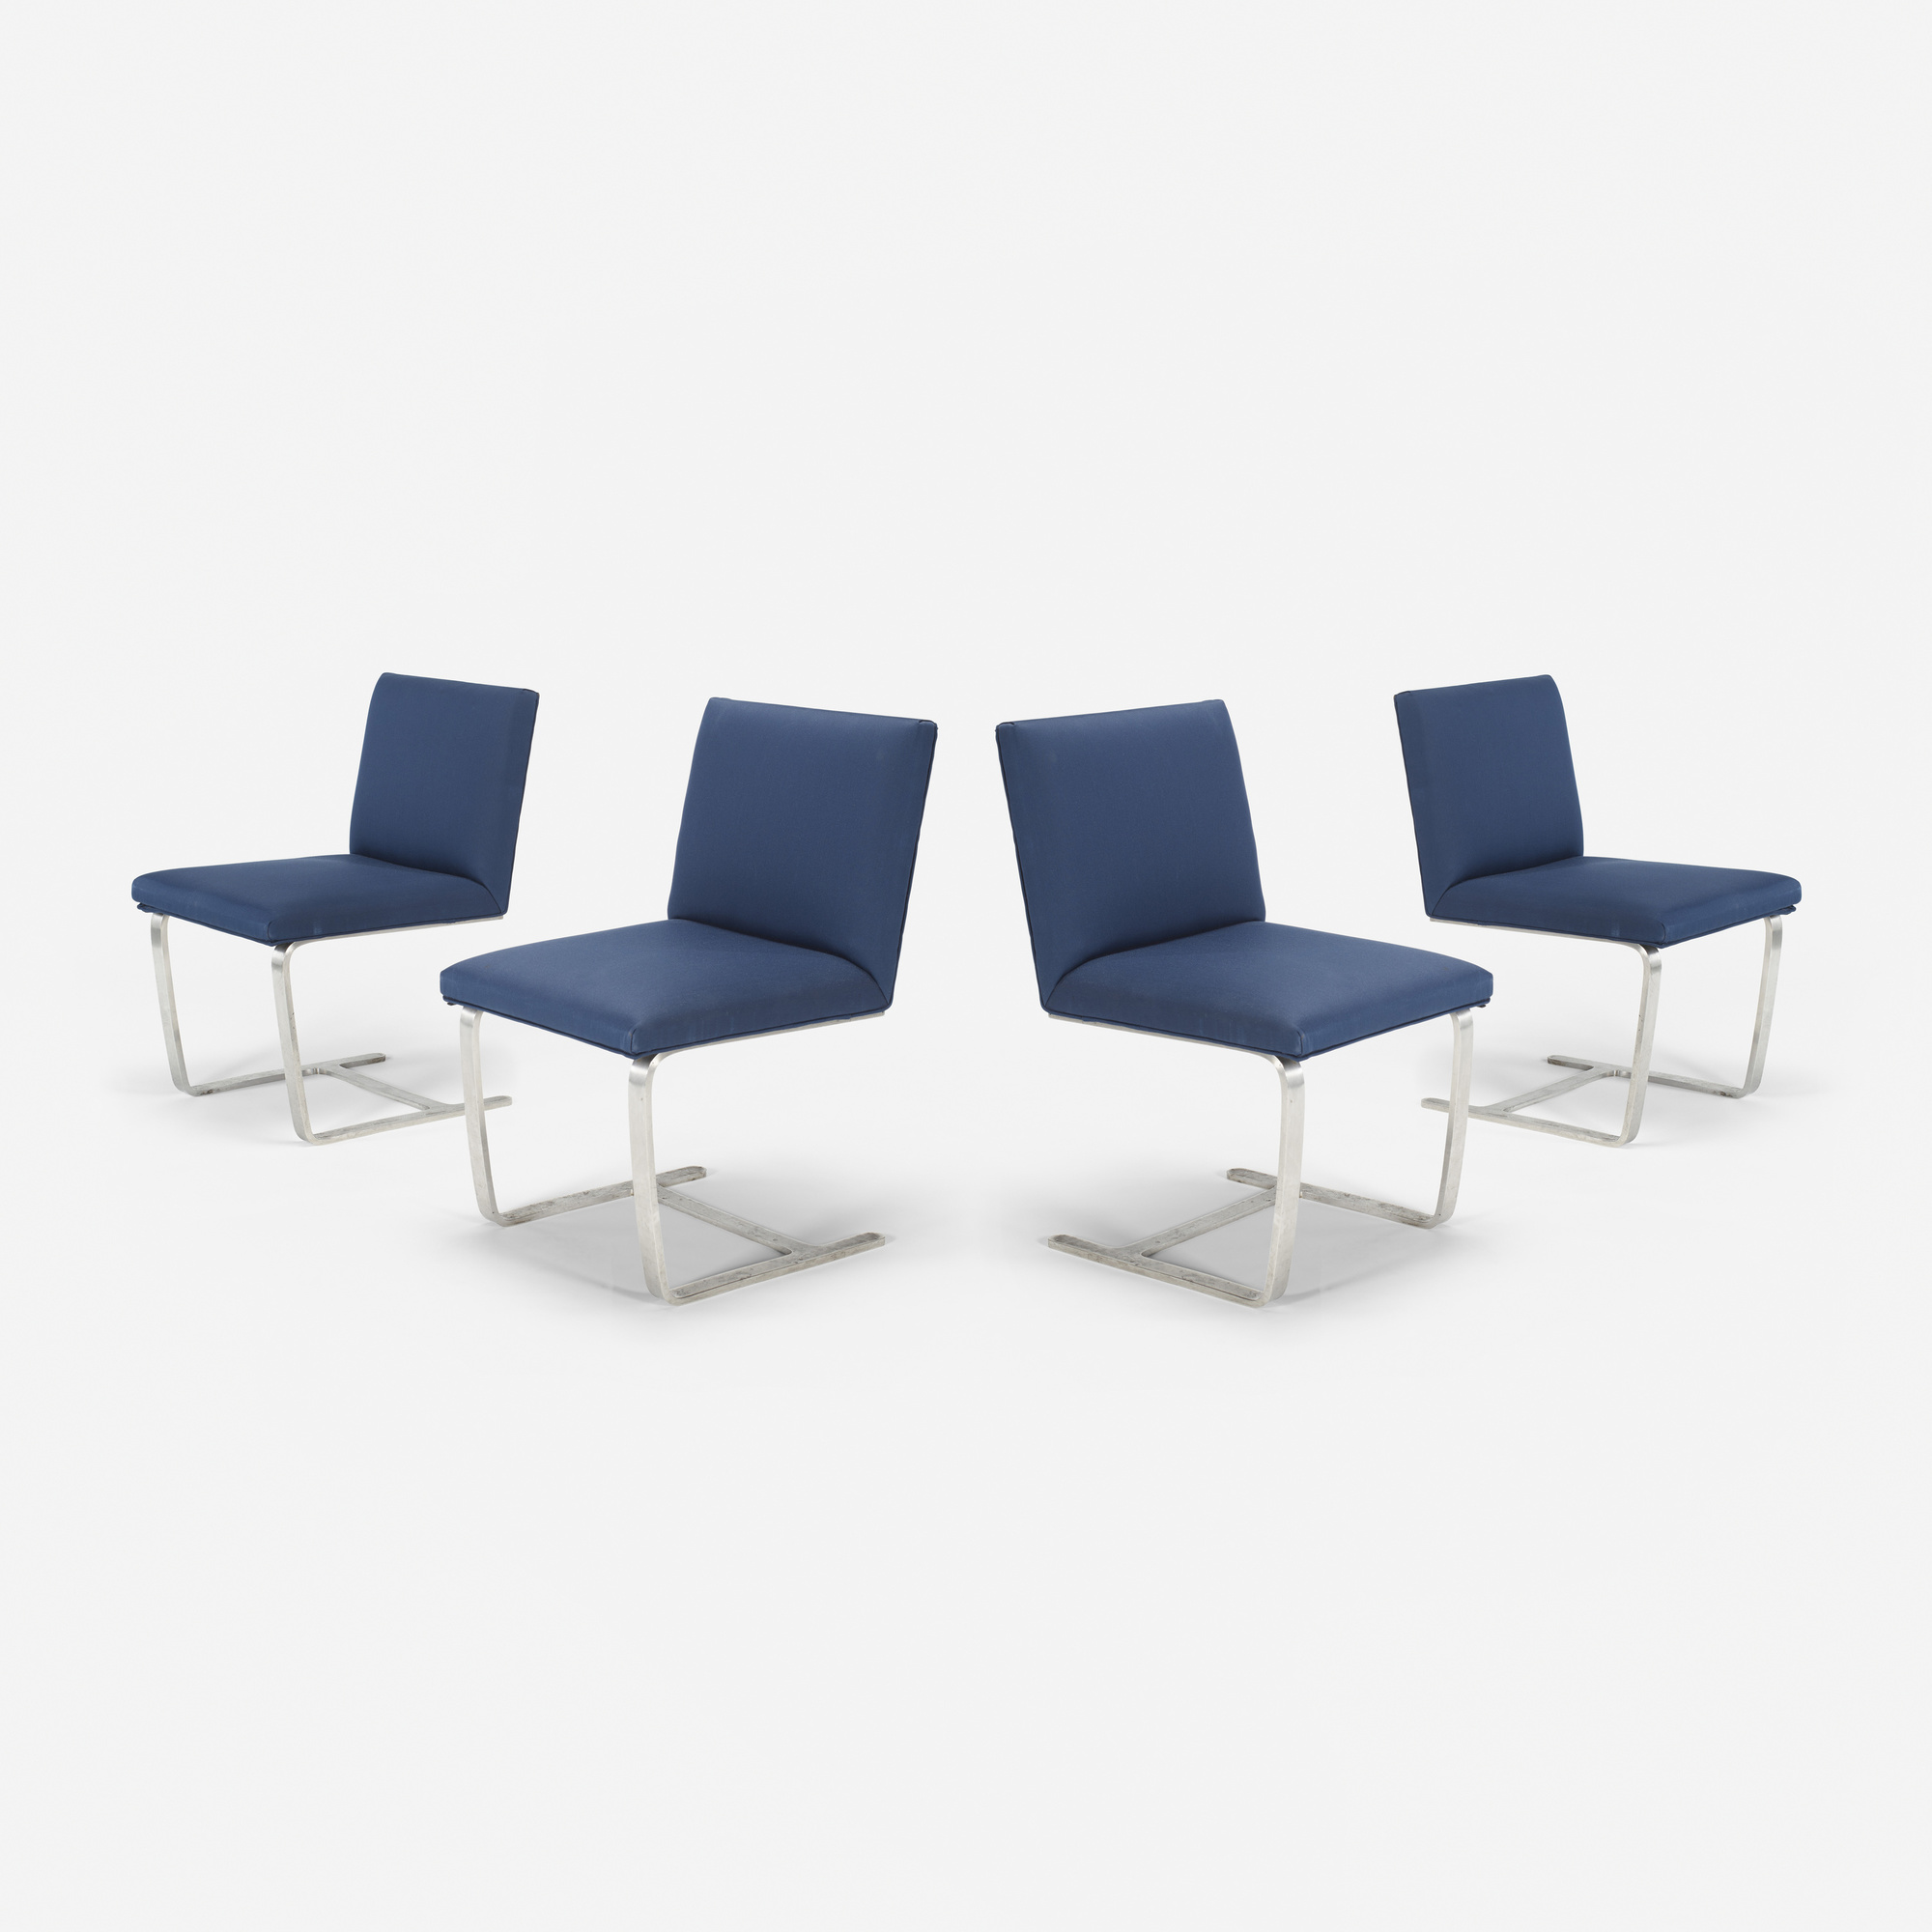 215: Ludwig Mies van der Rohe / Custom Brno side chairs from The Four Seasons, set of four (1 of 1)